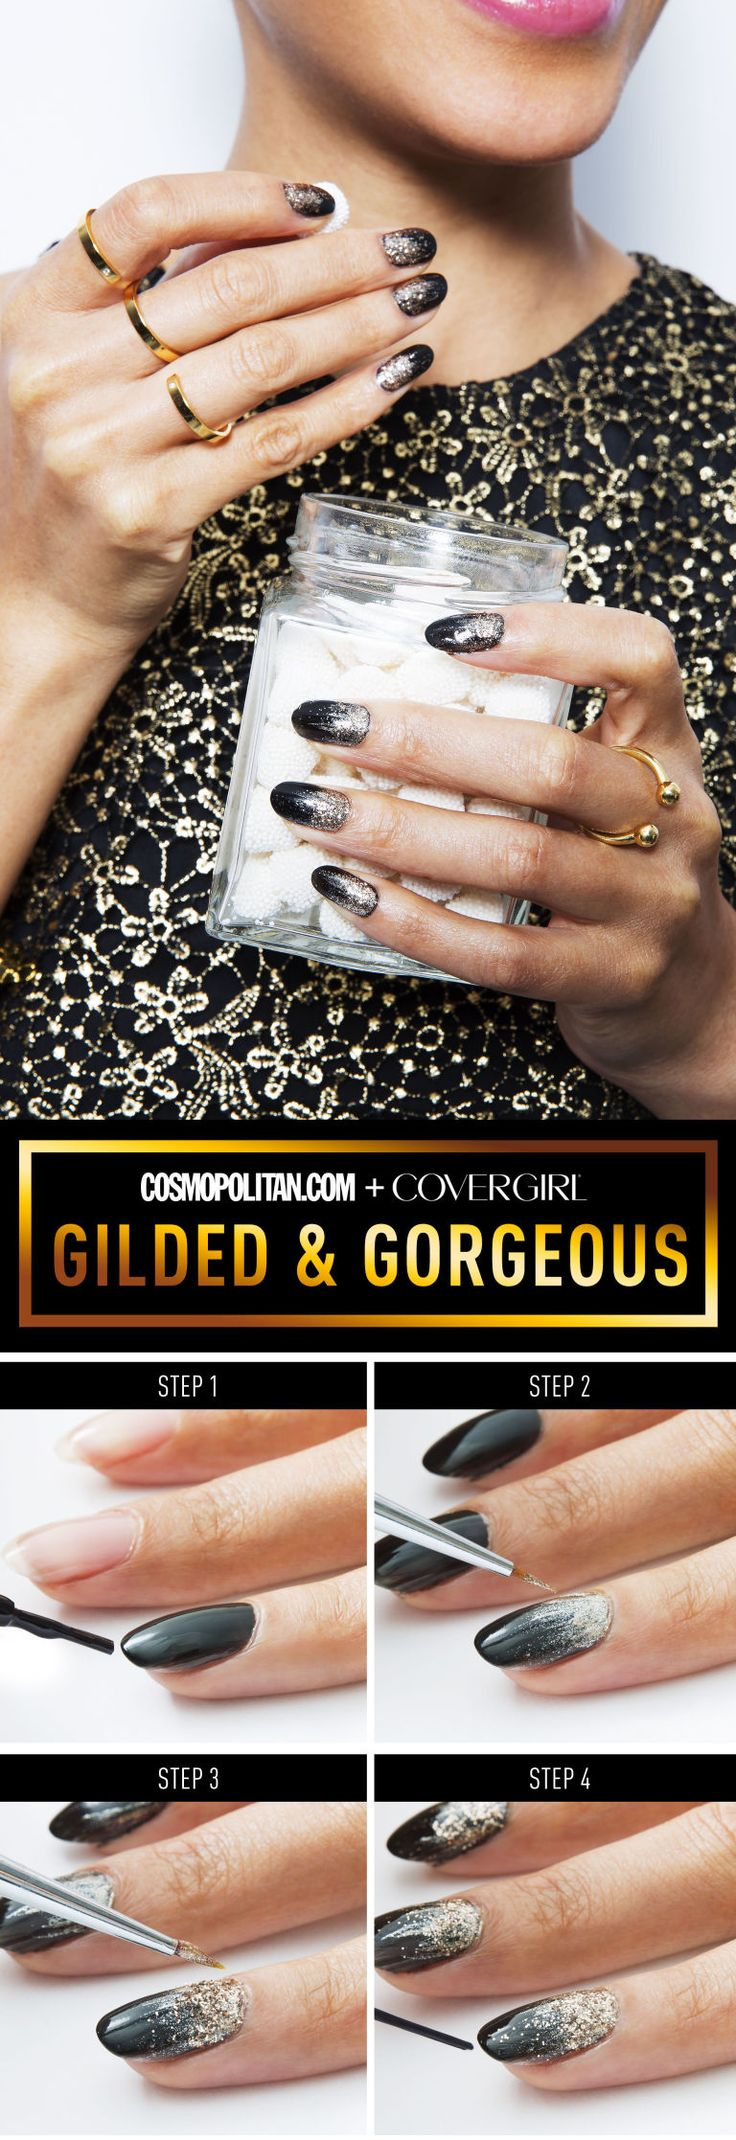 Nothing but glitz & gold here <3 #ColorfulCountdown